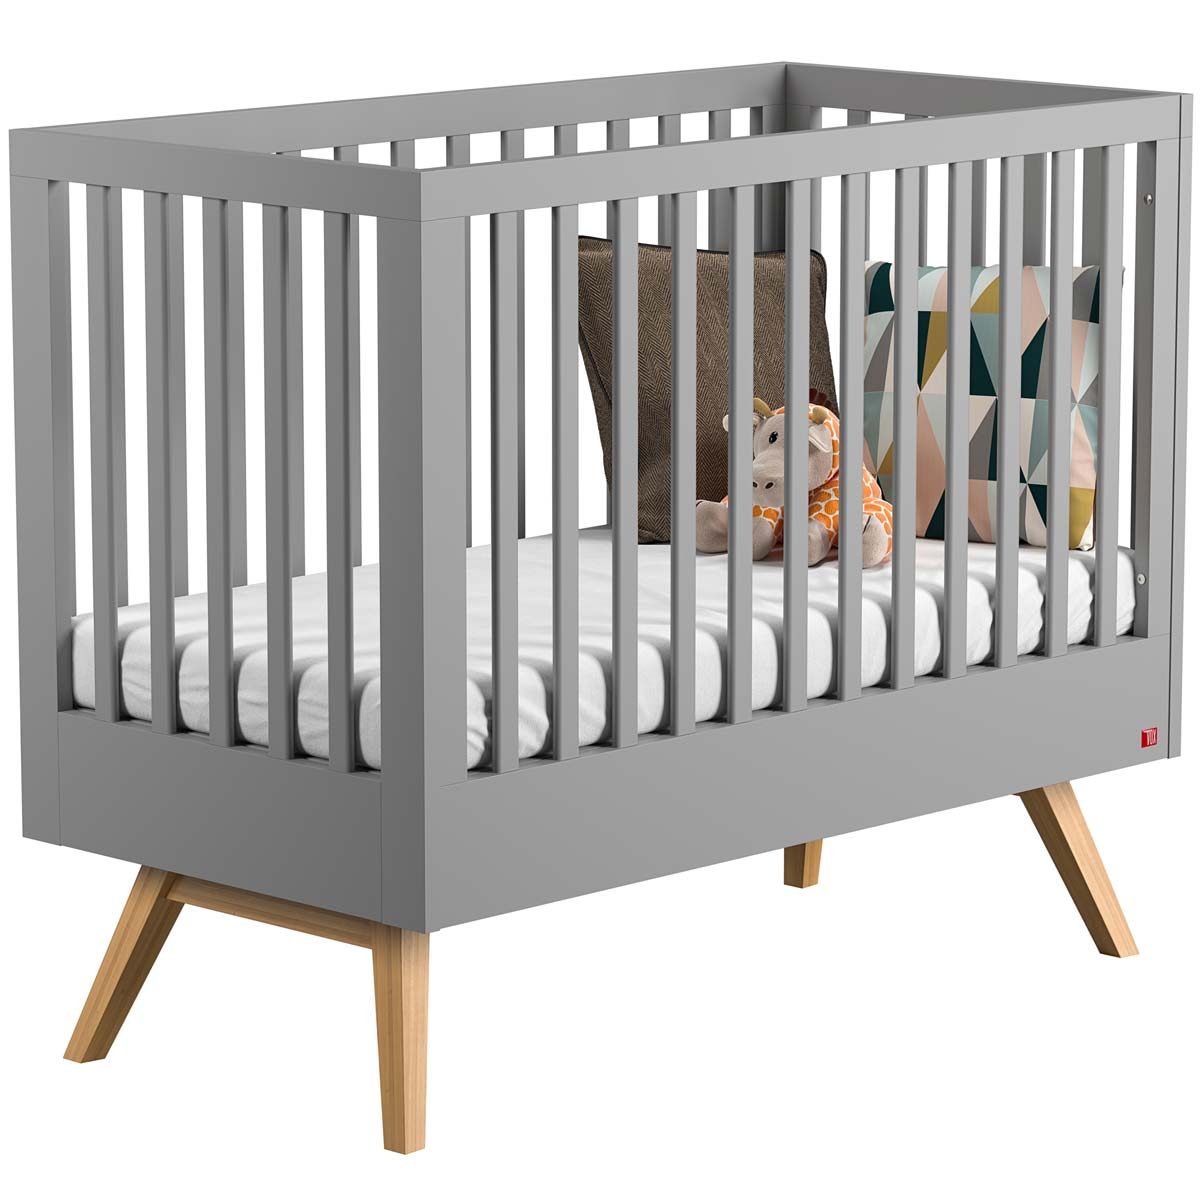 Babybett 70x140 Vox Nautis Babybett 70x140 Light Grey Oak Zum Toppreis